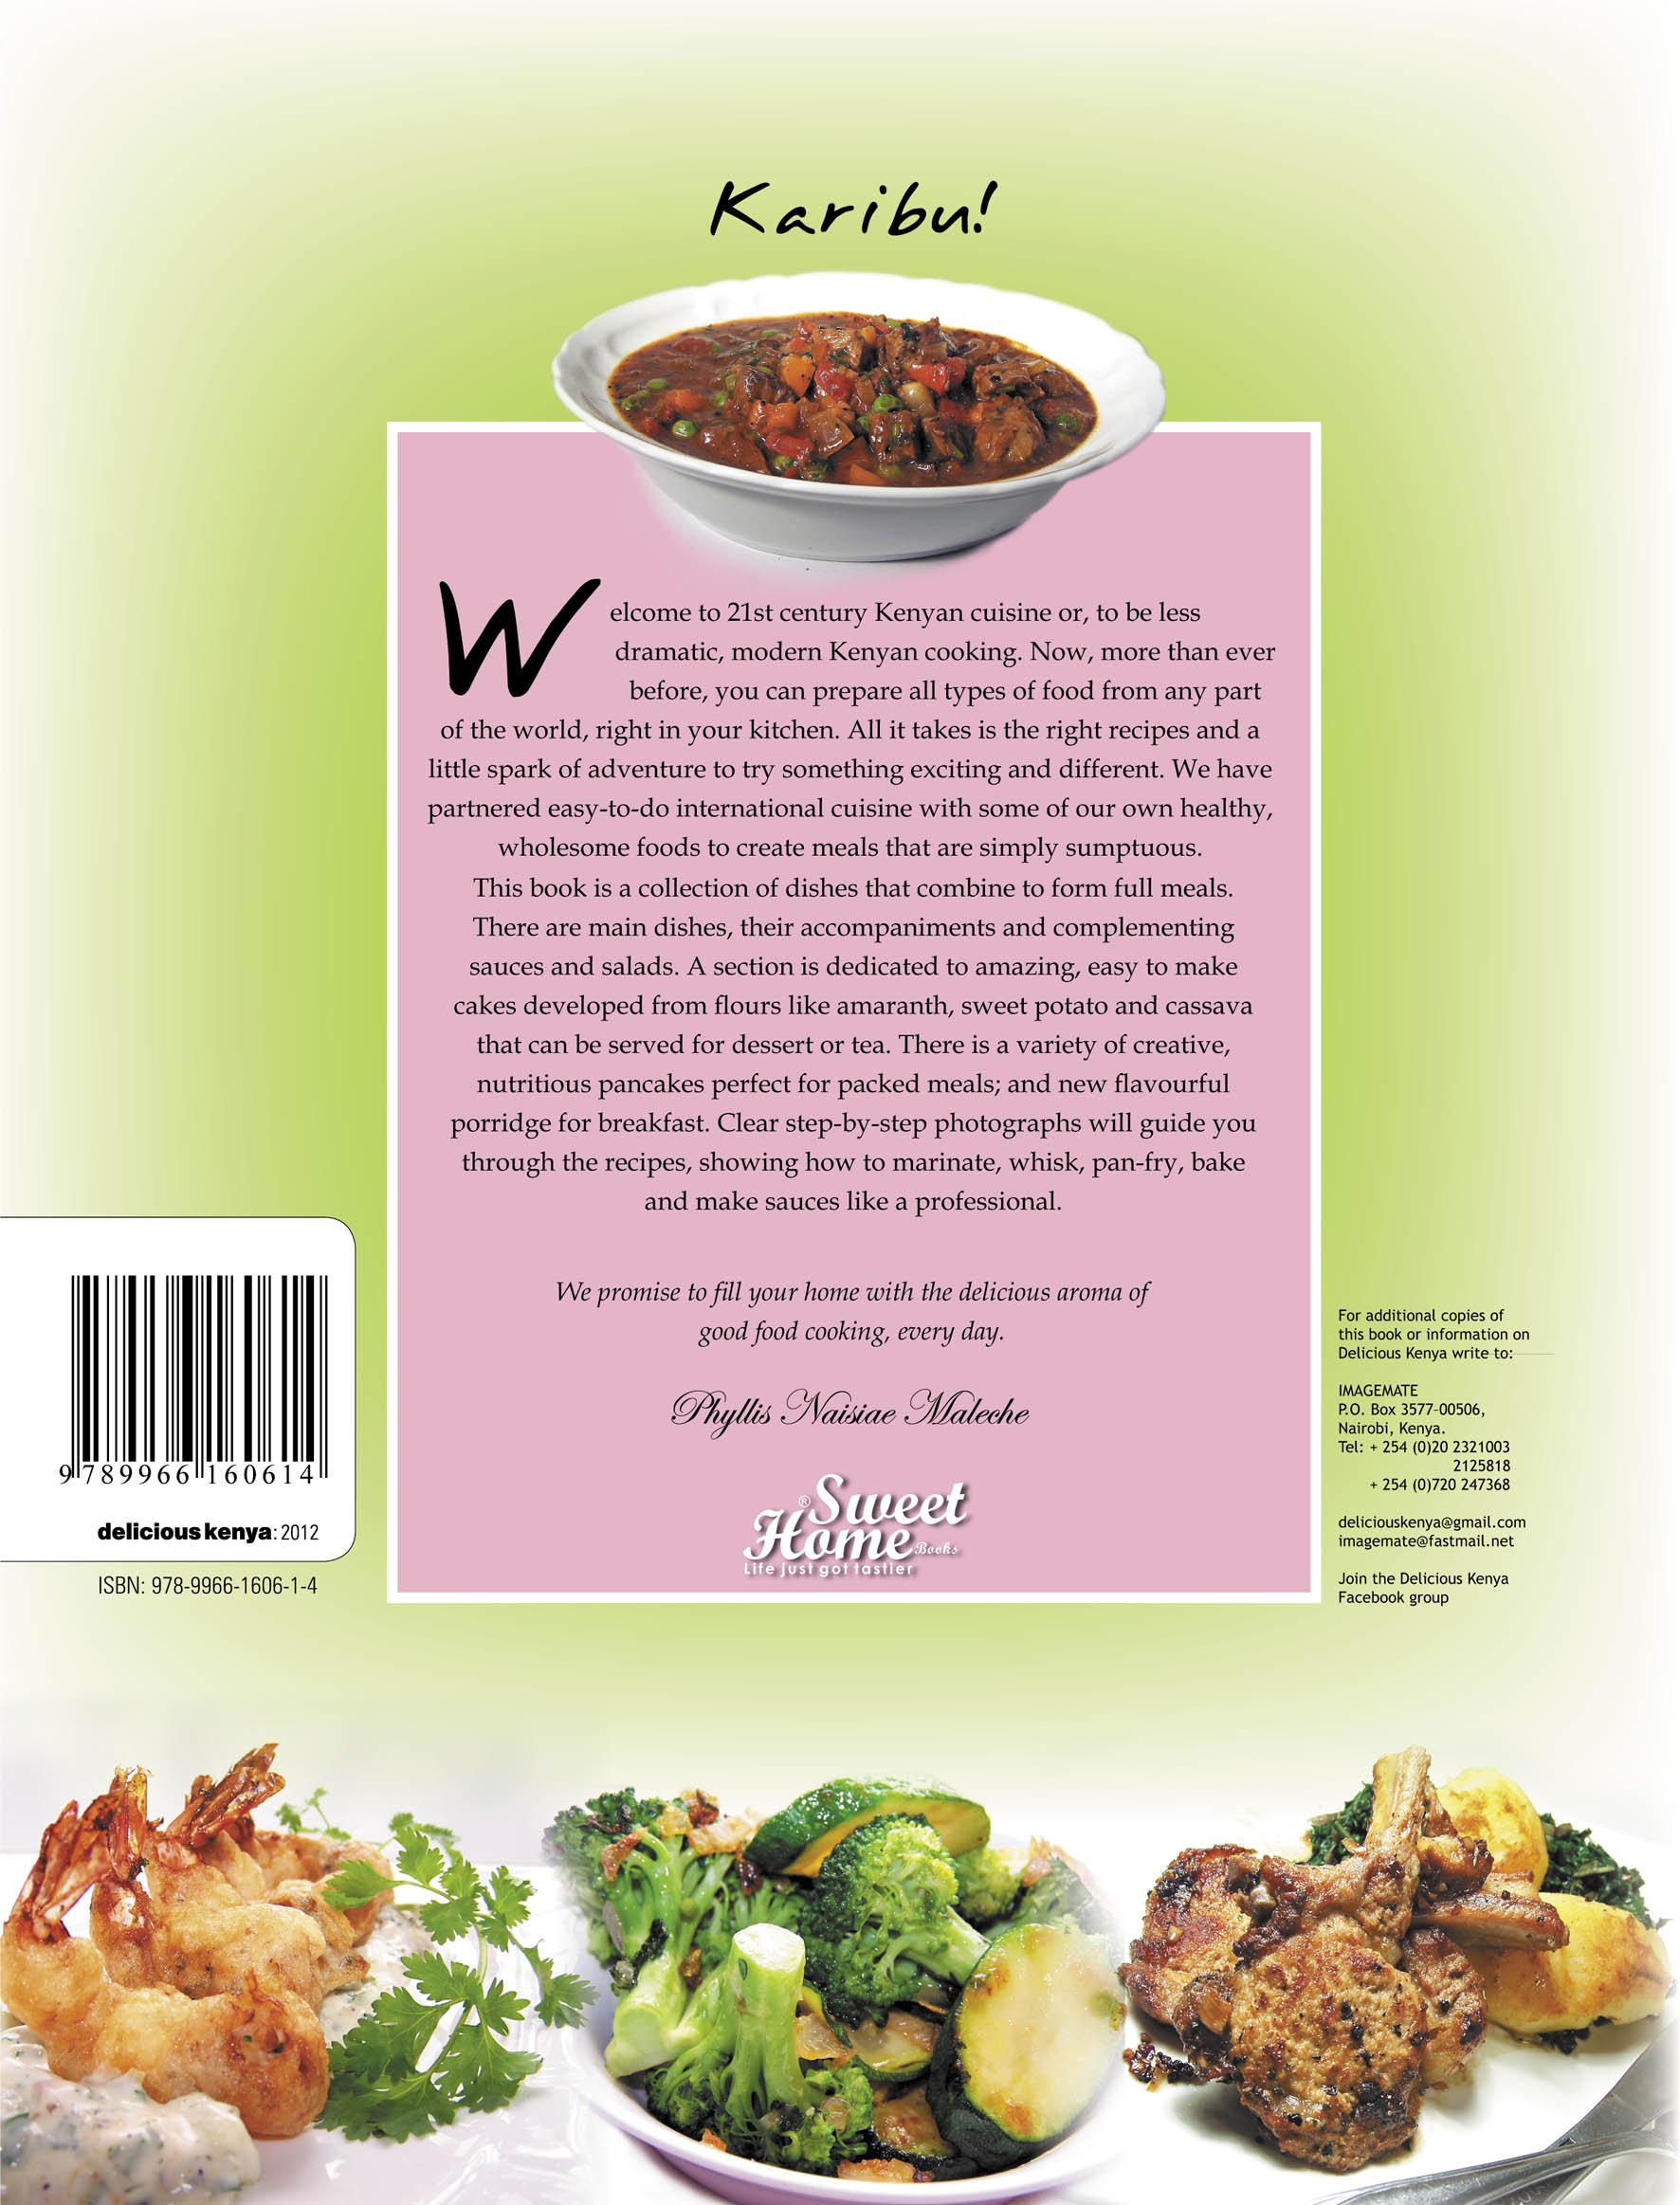 Delicious kenya cookbook 2 phyllis maleche anne marie nyamu delicious kenya cookbook 2 phyllis maleche anne marie nyamu 9789966160614 amazon books forumfinder Choice Image